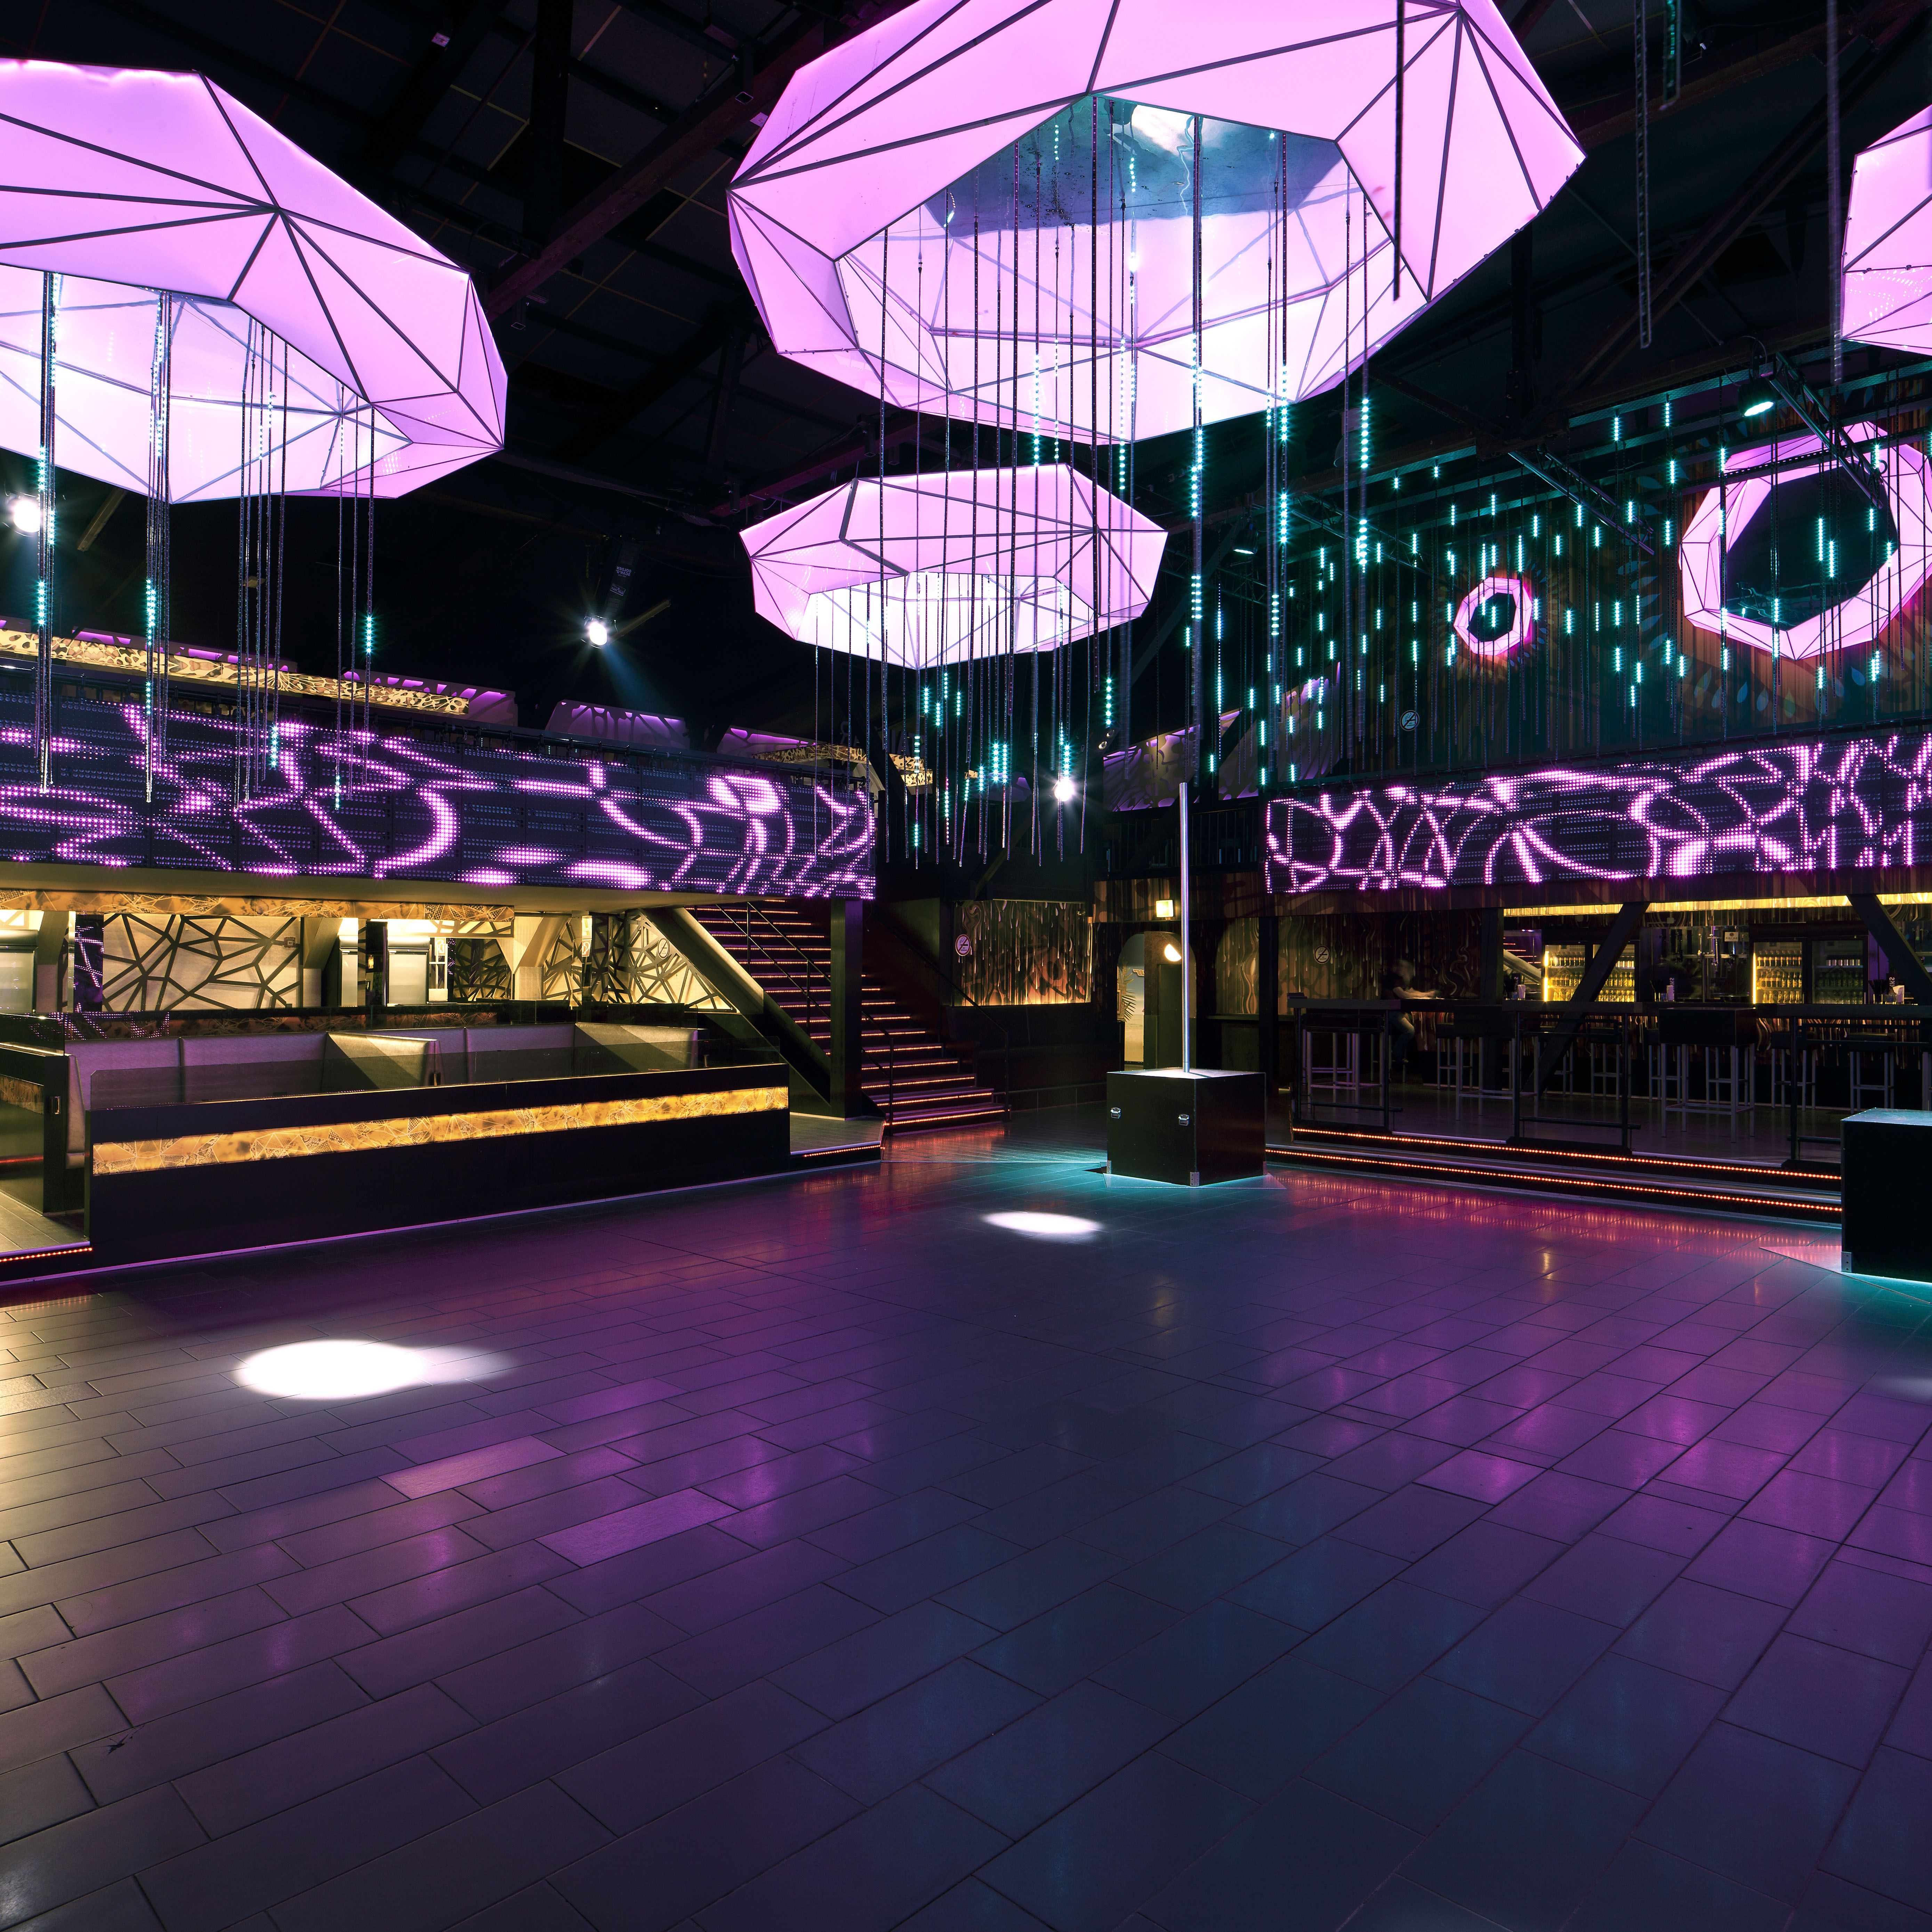 Space Design Club Rush Hour In Dortmund Germany By Heilight